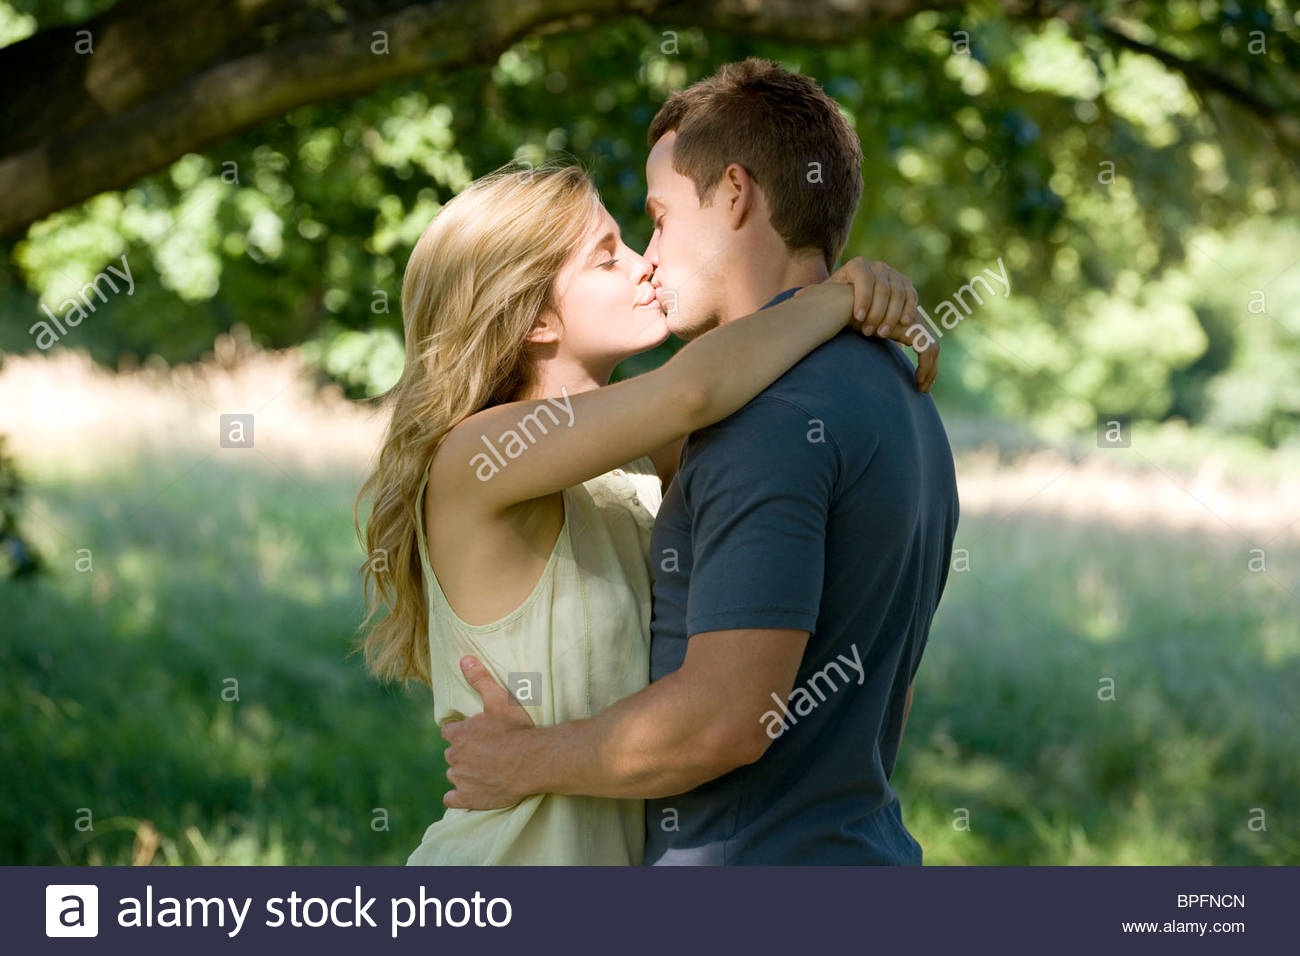 A young couple standing beneath a tree, kissing - Stock Image